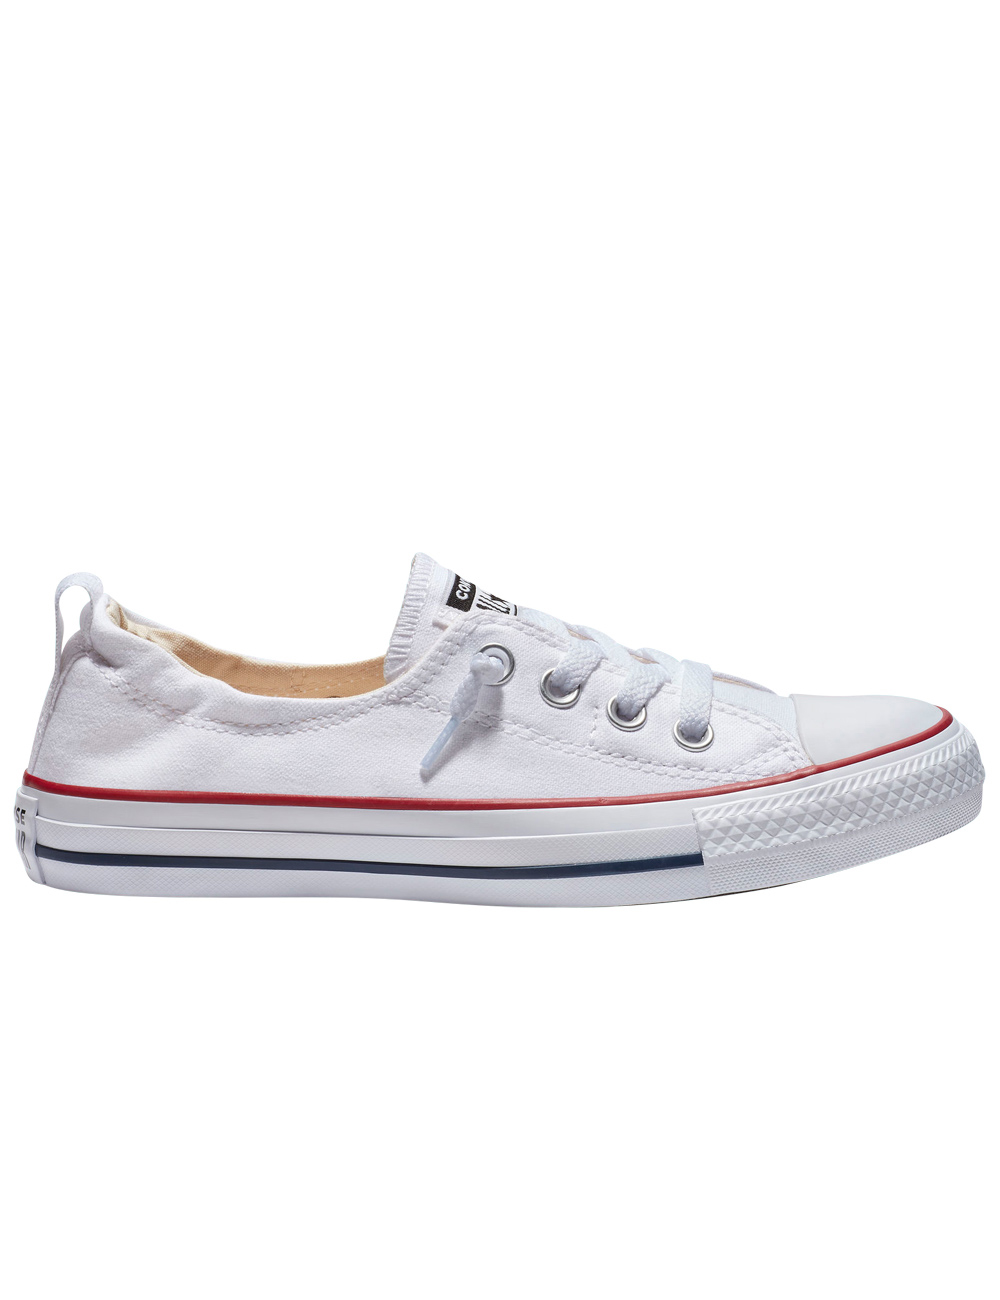 buy online cf50c 593ee Sneaker «All Star Shoreline» Converse, weiss